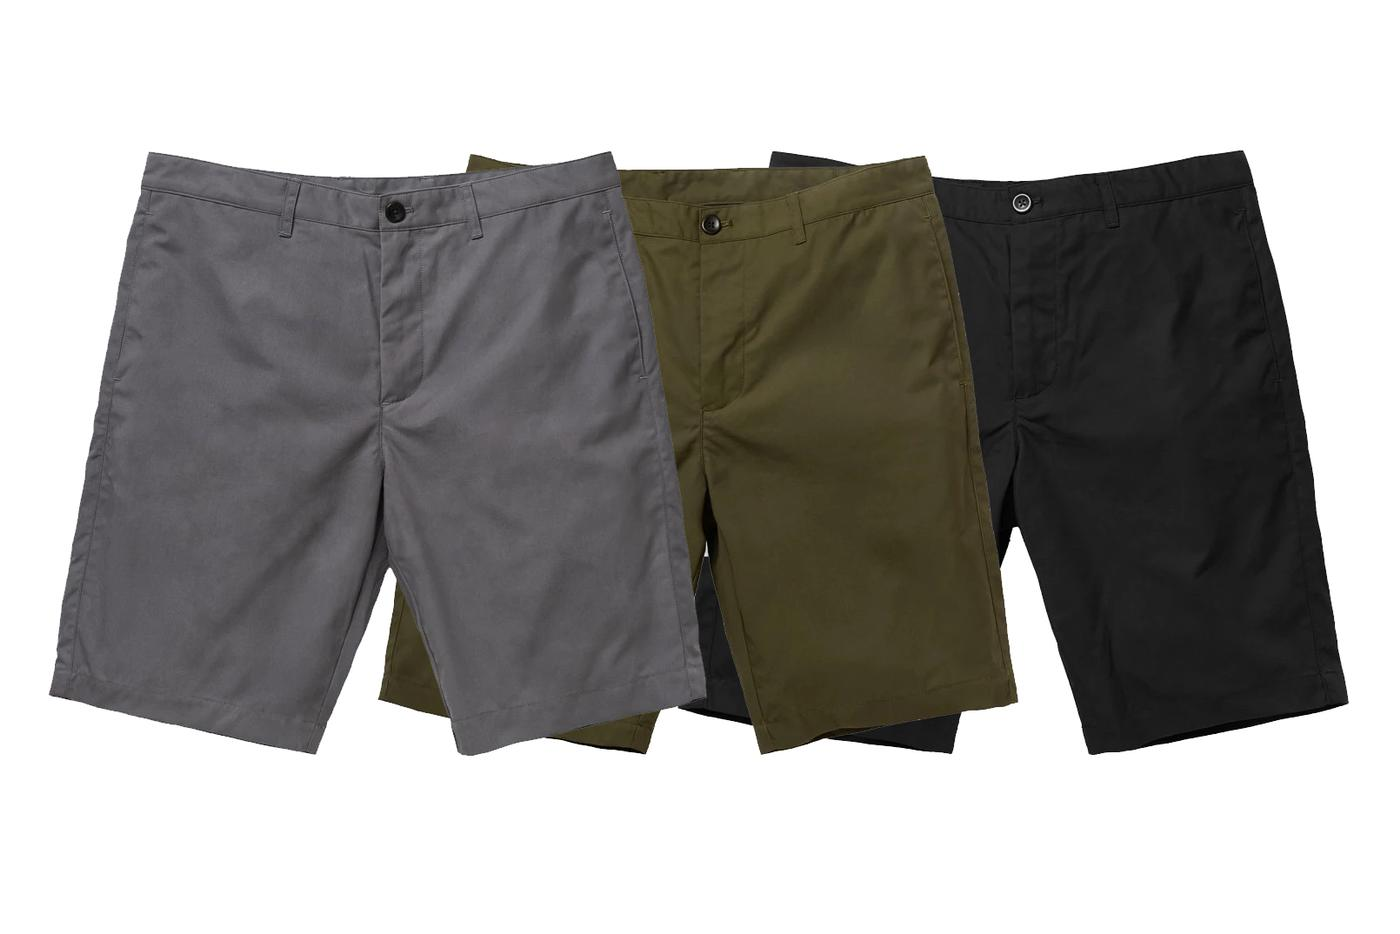 Search and State's Field Shorts are Back in Stock